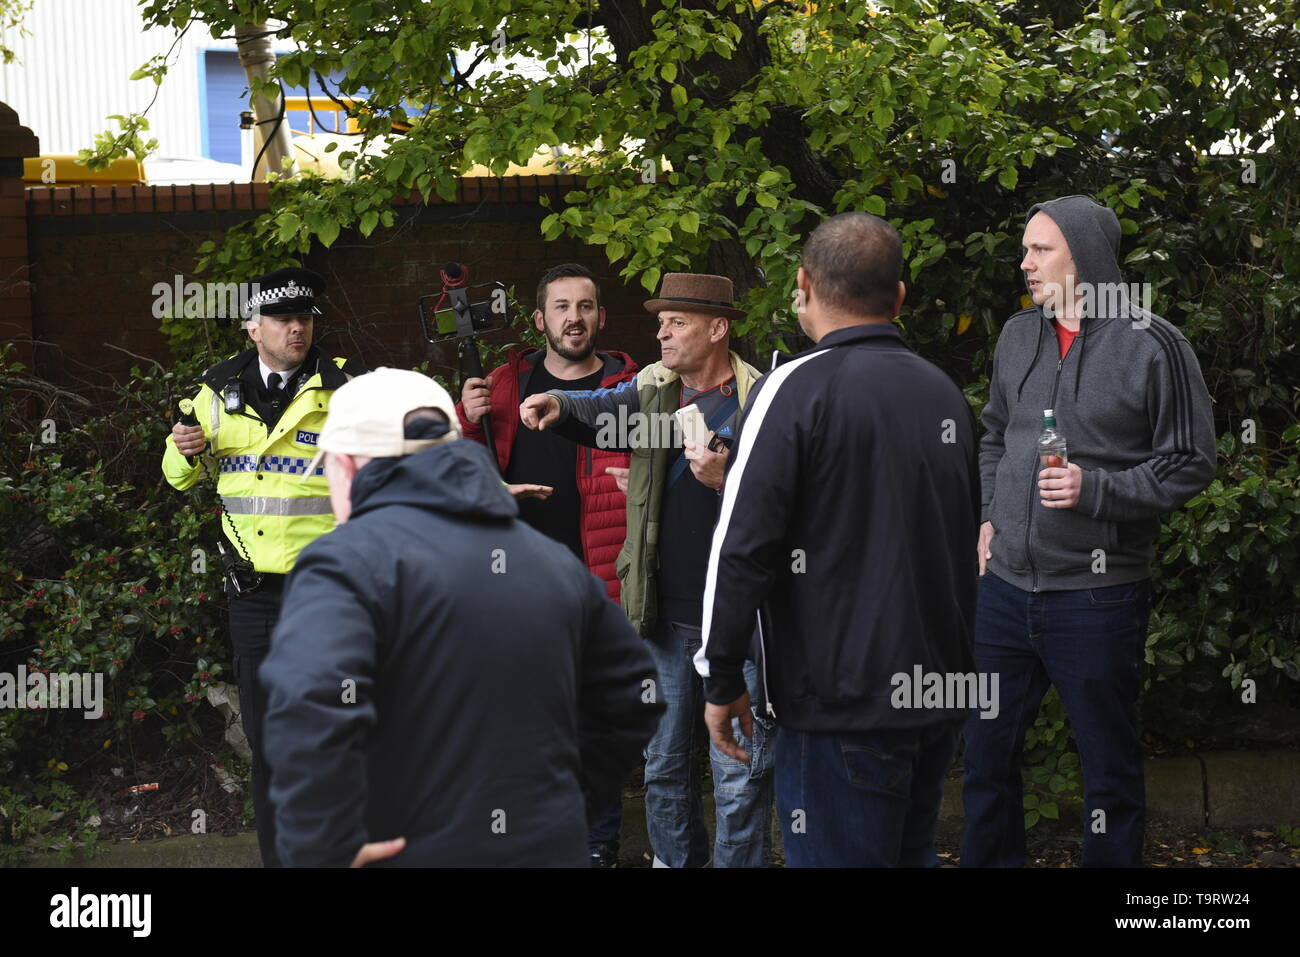 James Goddard hit the headlines in January 2019 after shouting abuse at MPs in Westminister. Here is in Liverpool filming anti-fascist protestors.  Police kept supporters and counter-demonstrators apart but clashed with counter-demonstrators ahead of Tommy Robinson's arrival. Credit David J Colbran - Stock Image